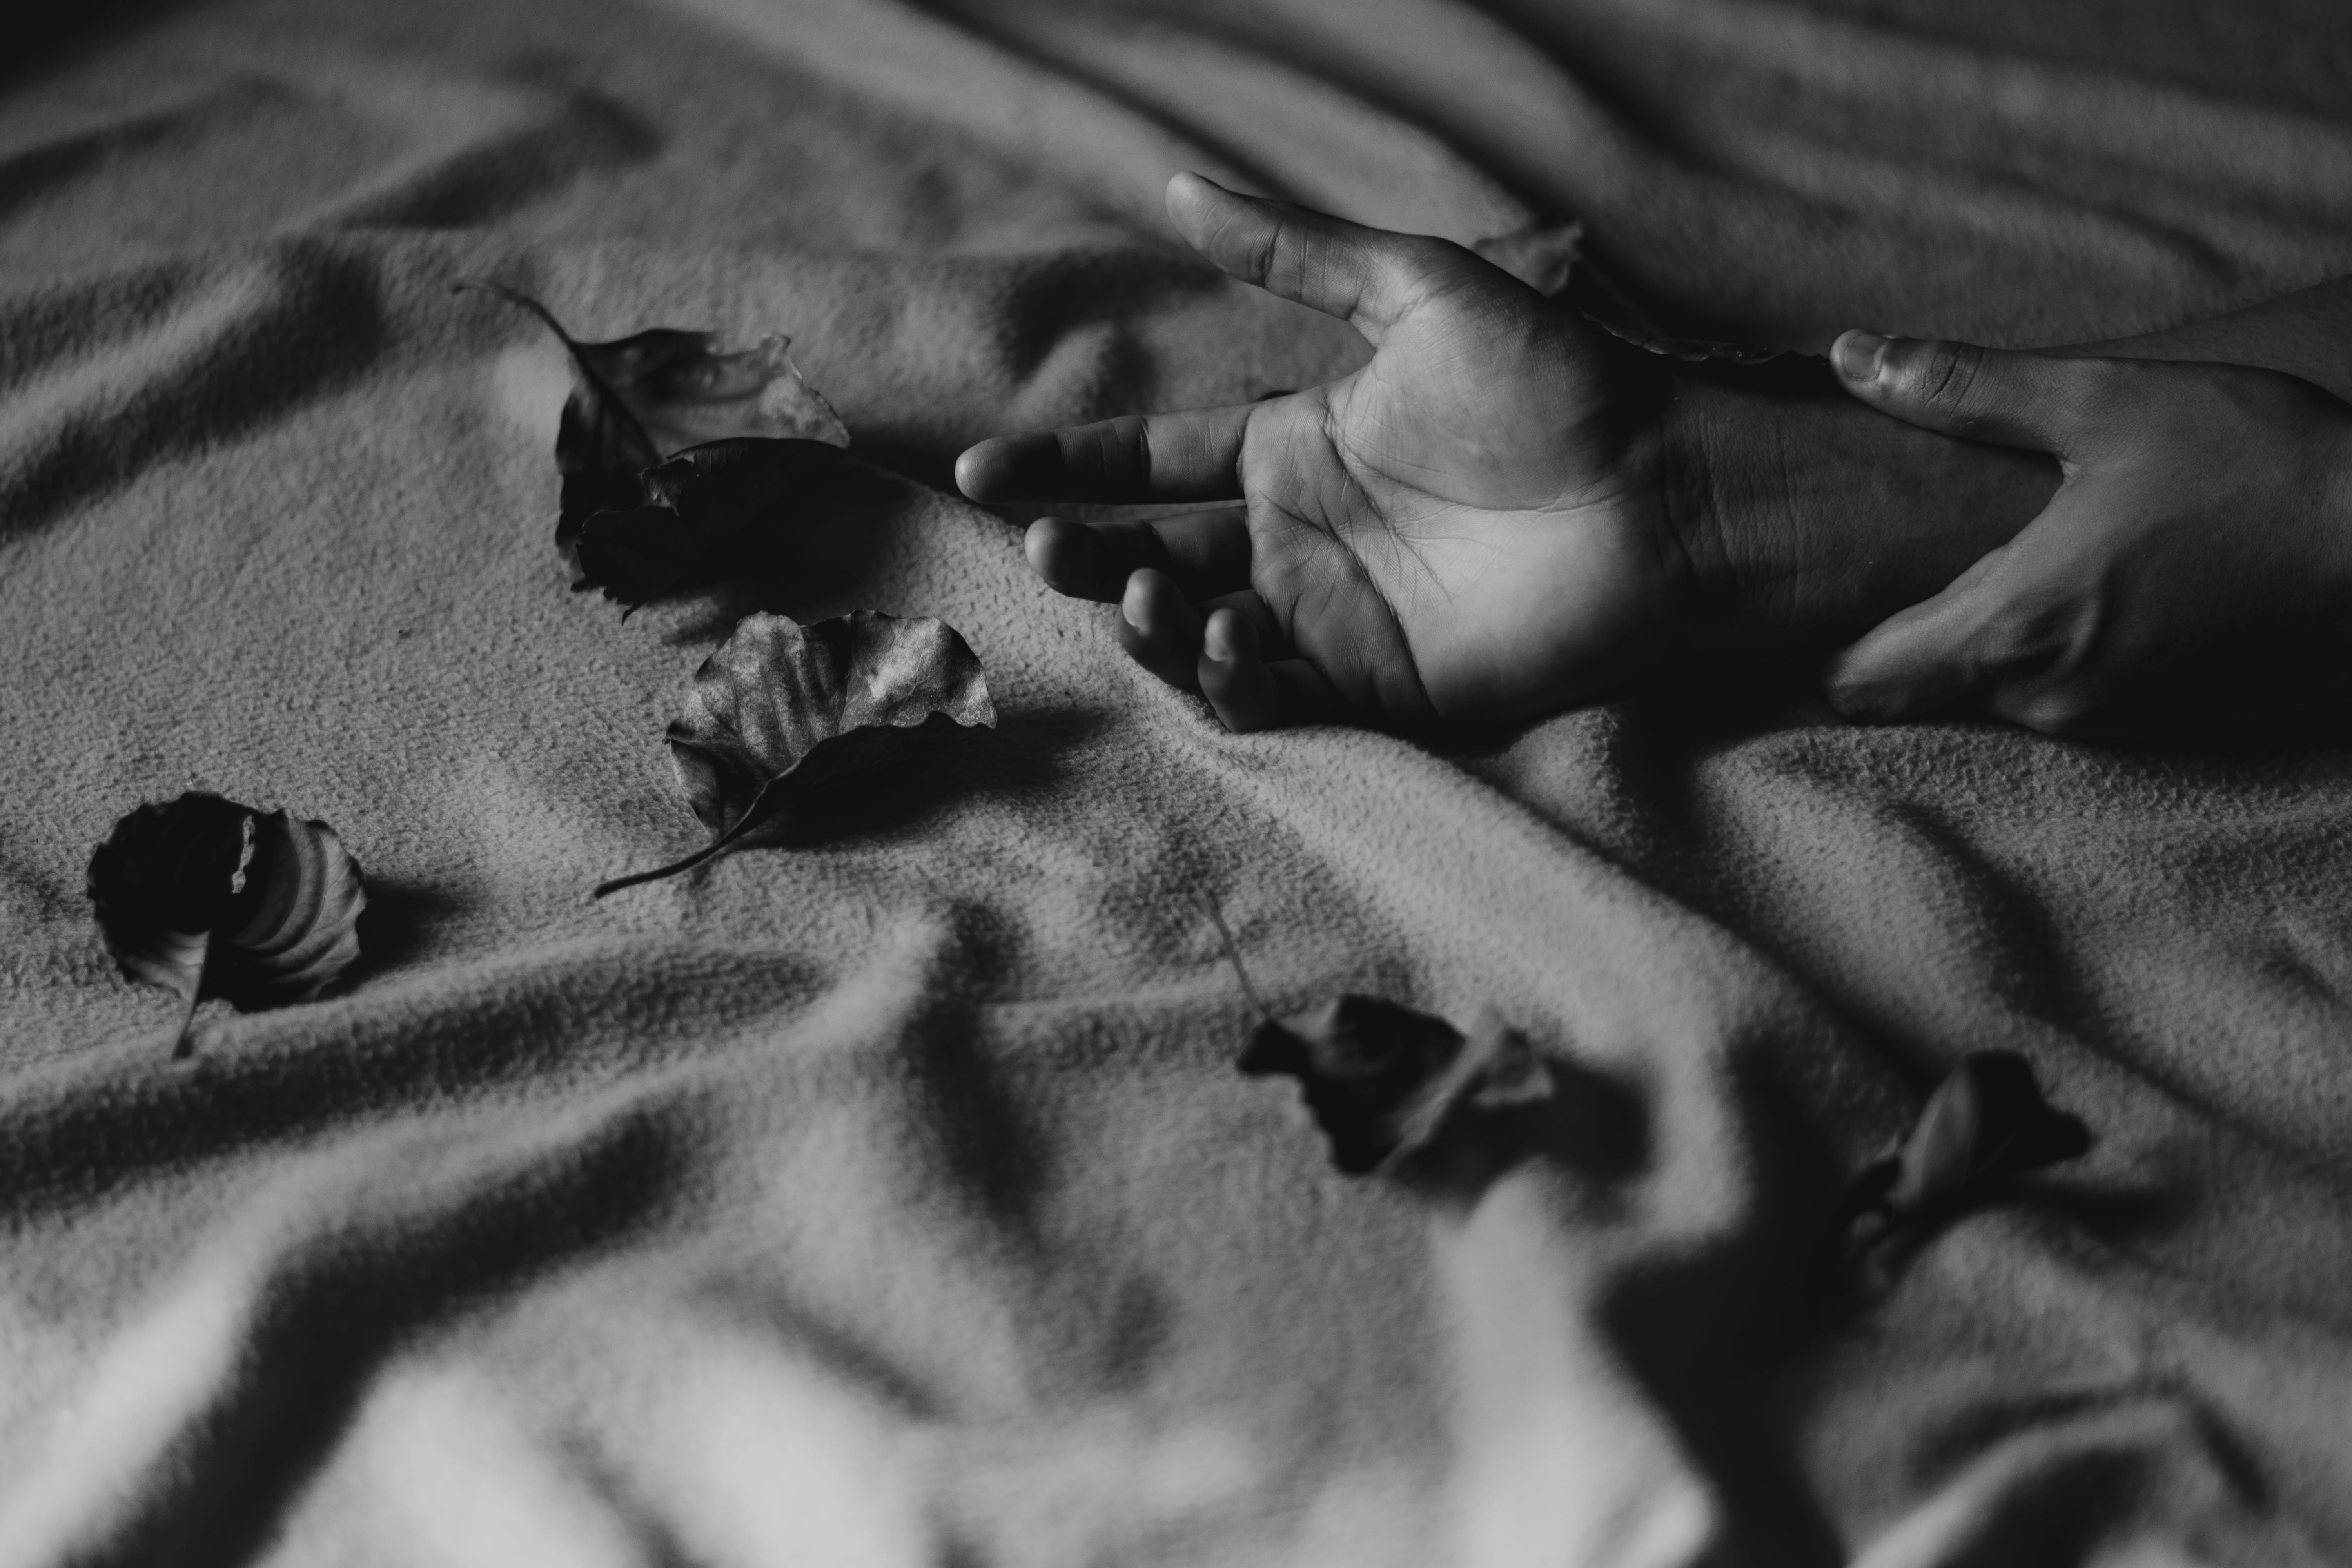 Grayscale Photography of Person's Hands on Textile With Leaves